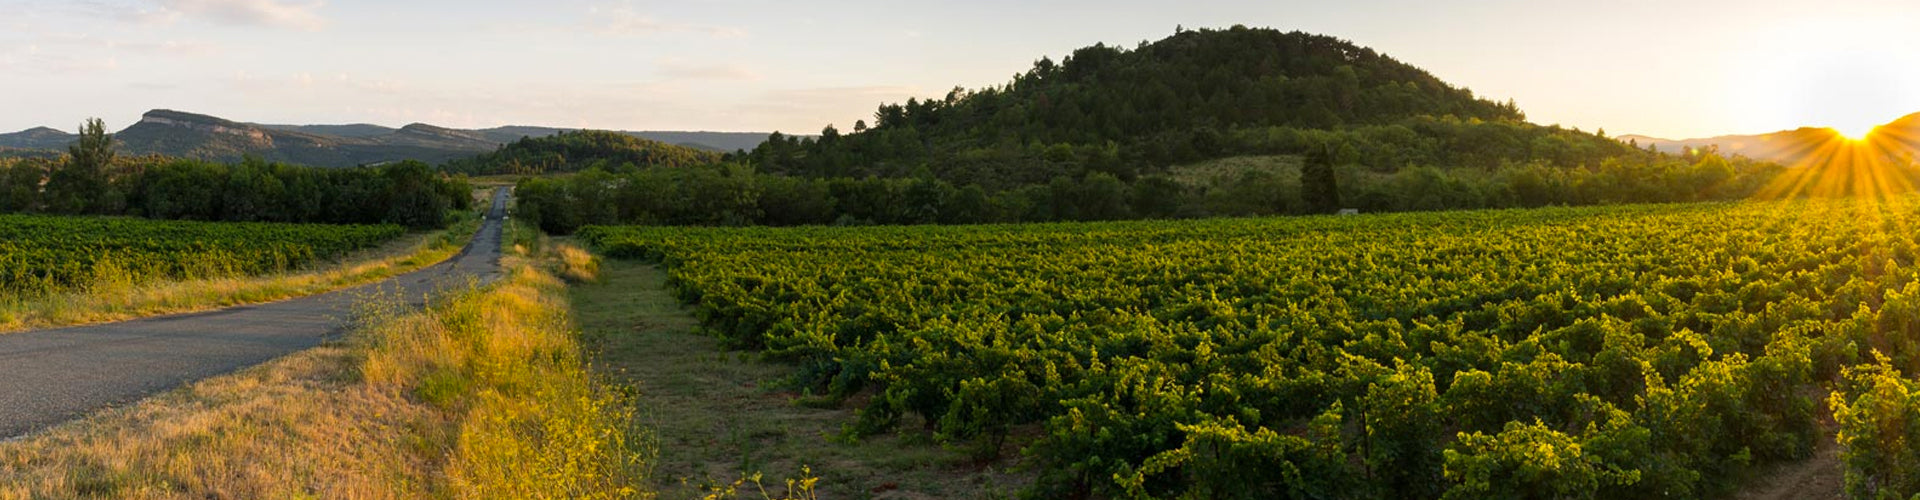 Olivier Coste Vineyards in the Languedoc